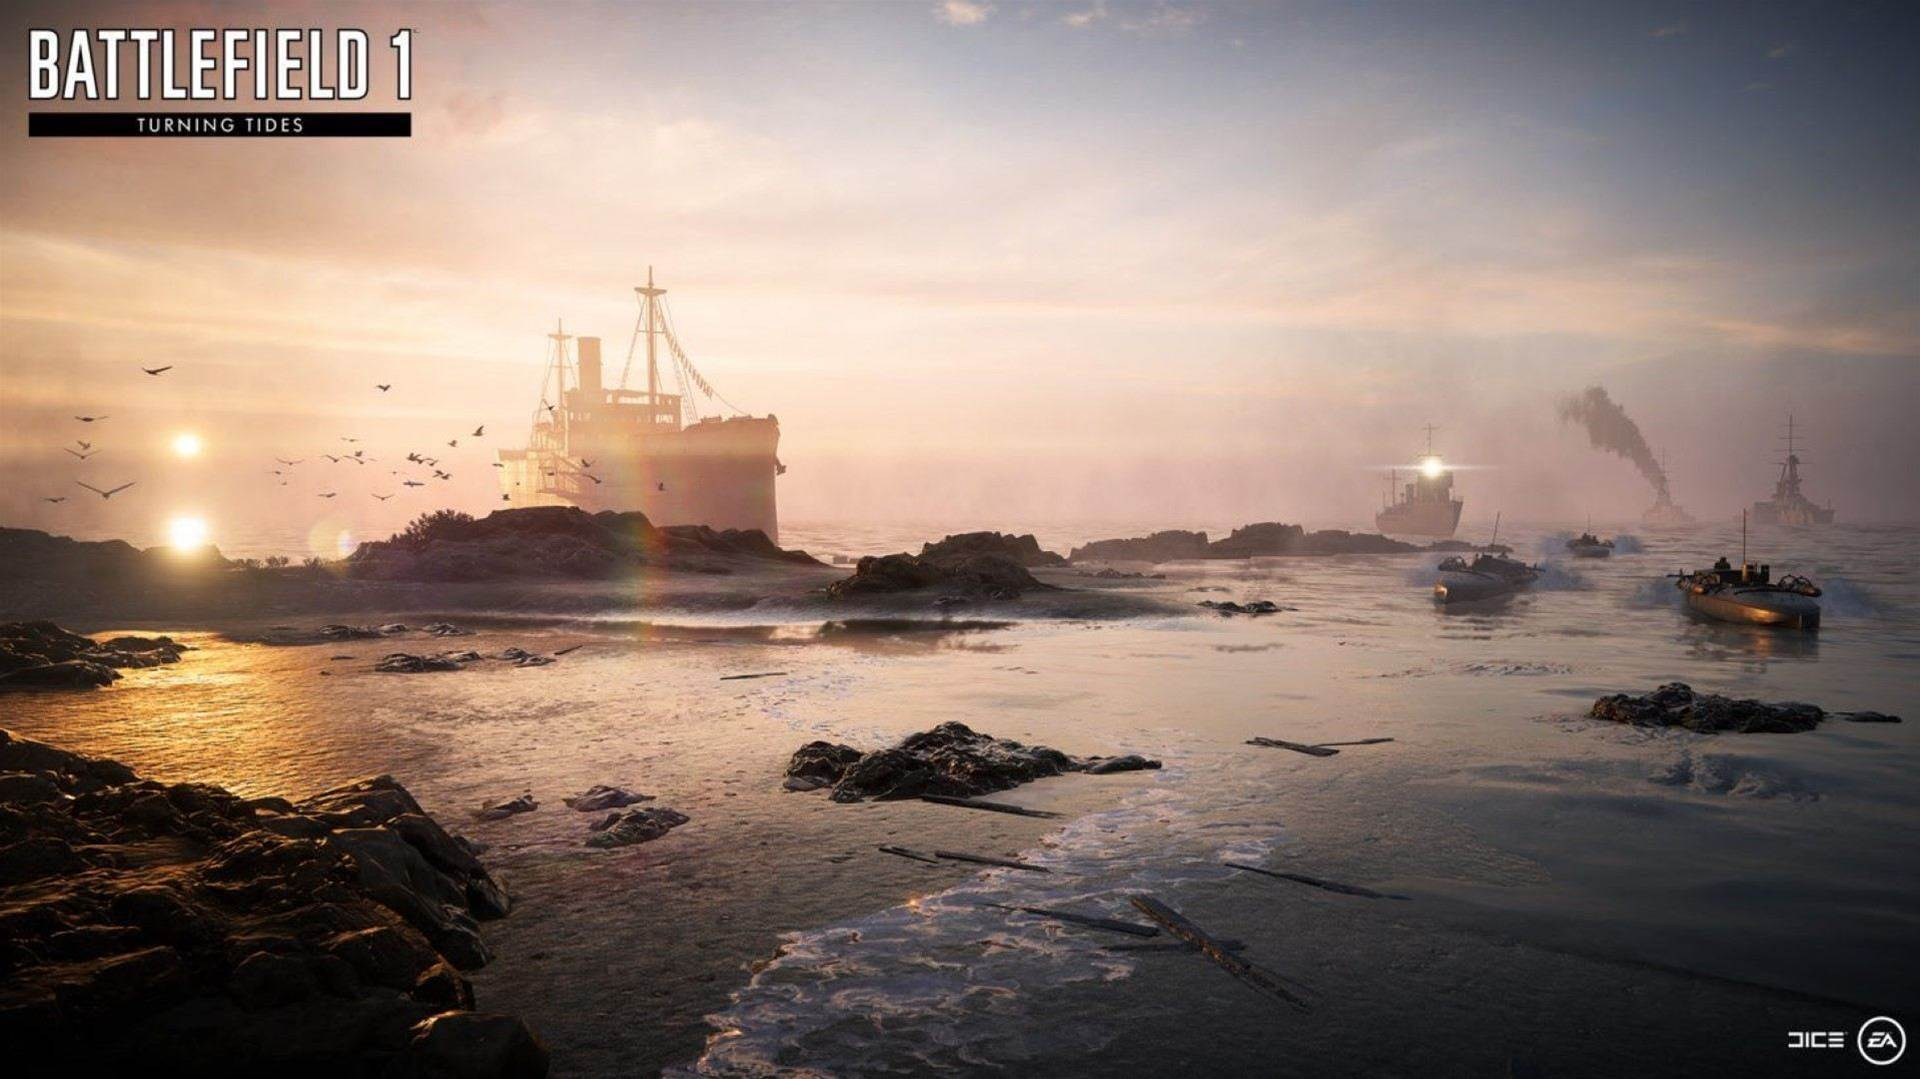 The Northern Sea invades Battlefield 1 in these images